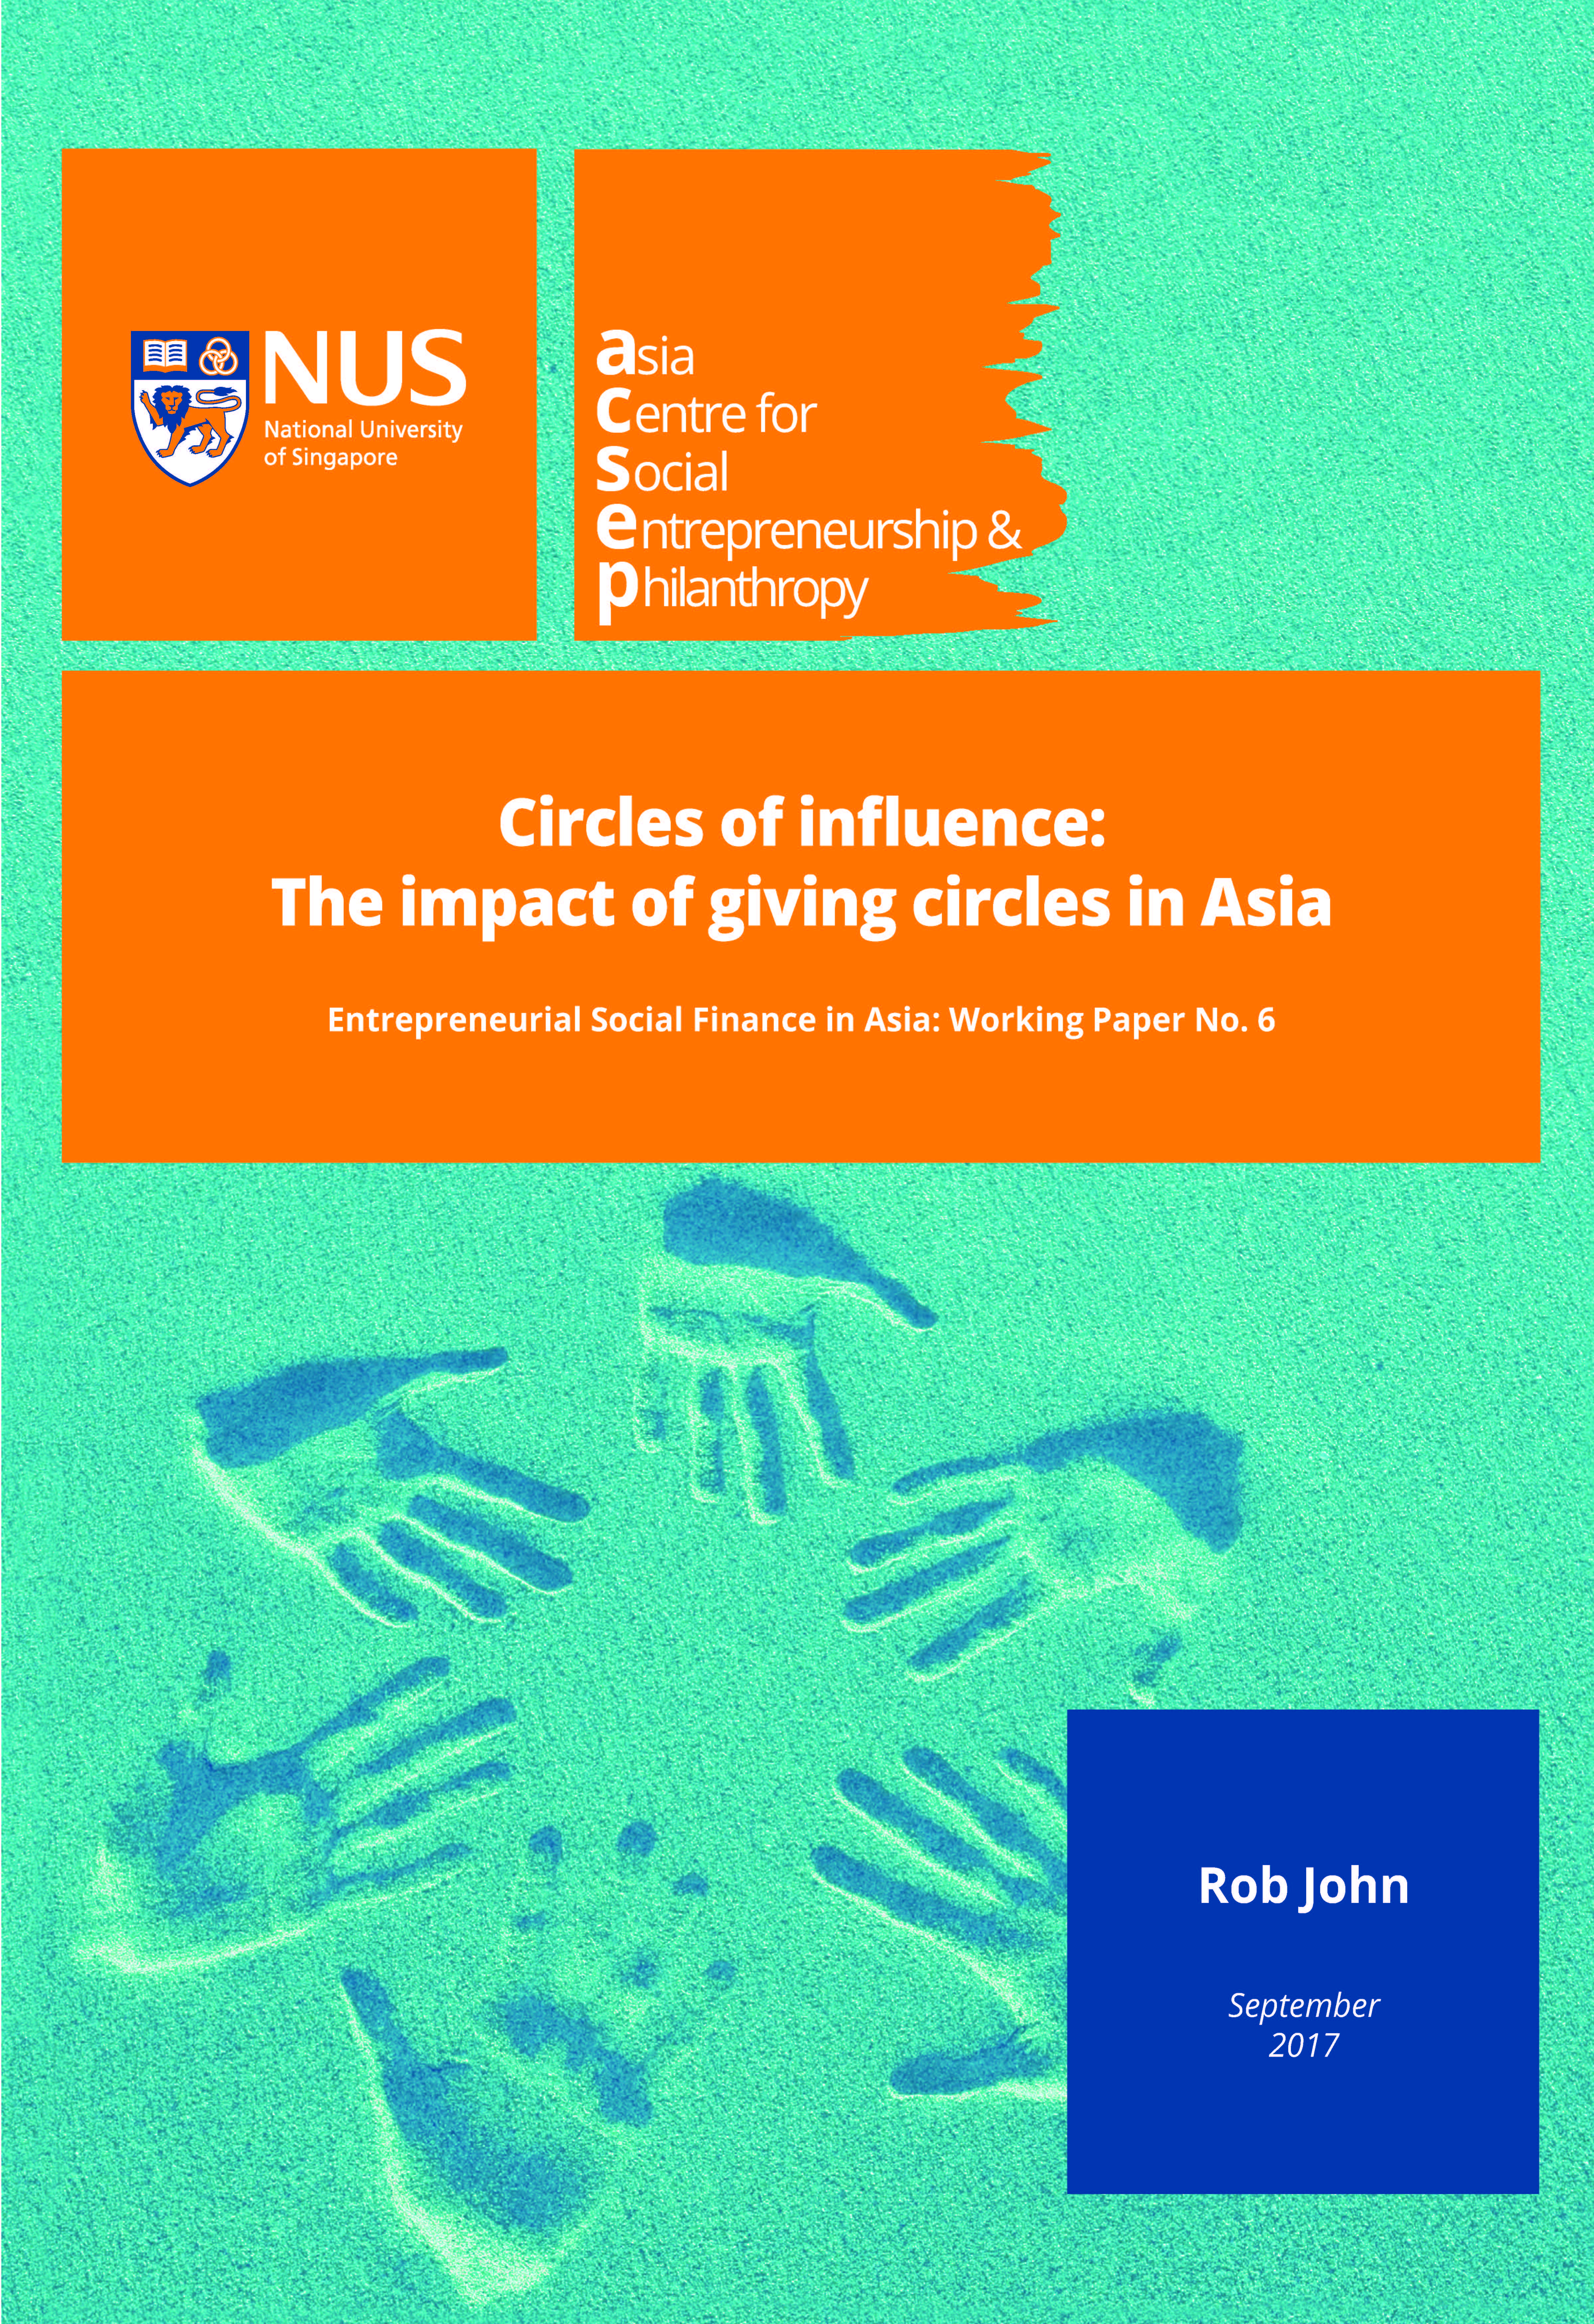 Circles of influence: The Impact of Giving Circles in Asia